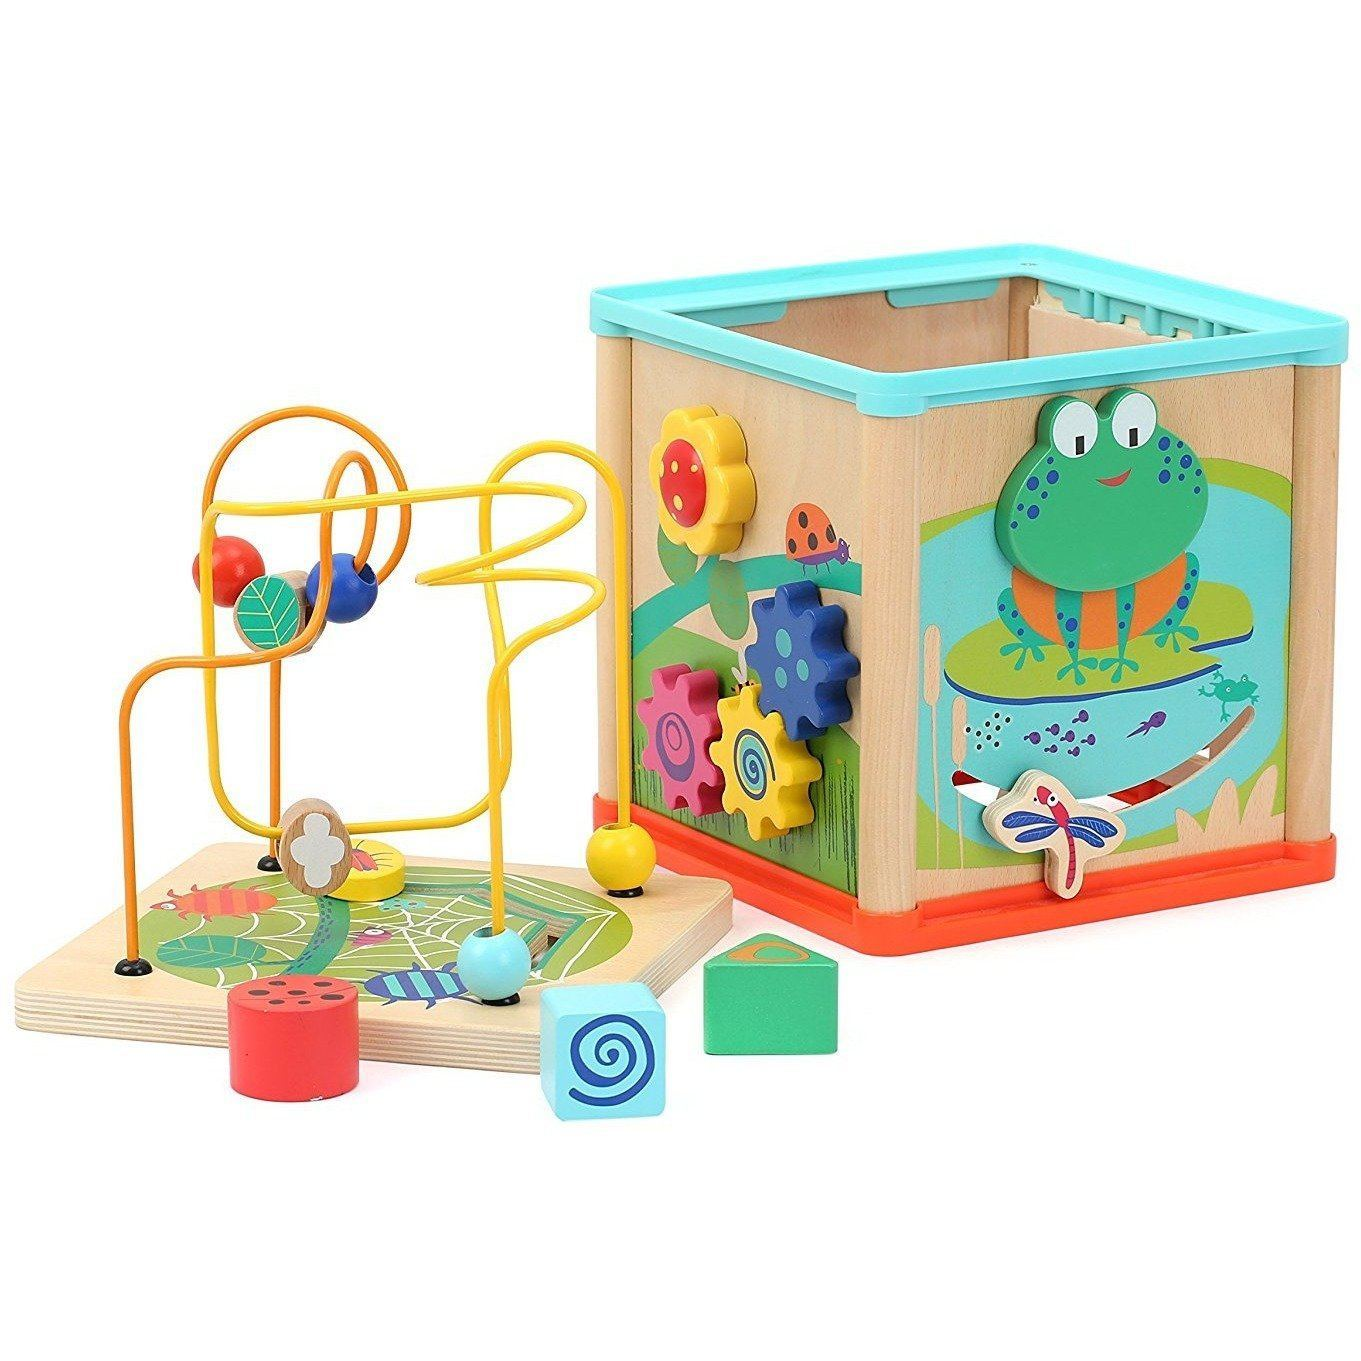 Small Foot Activity Cube with Multifunctional Playing Fun on Five Sides (de madeira) Anne Claire Baby Store